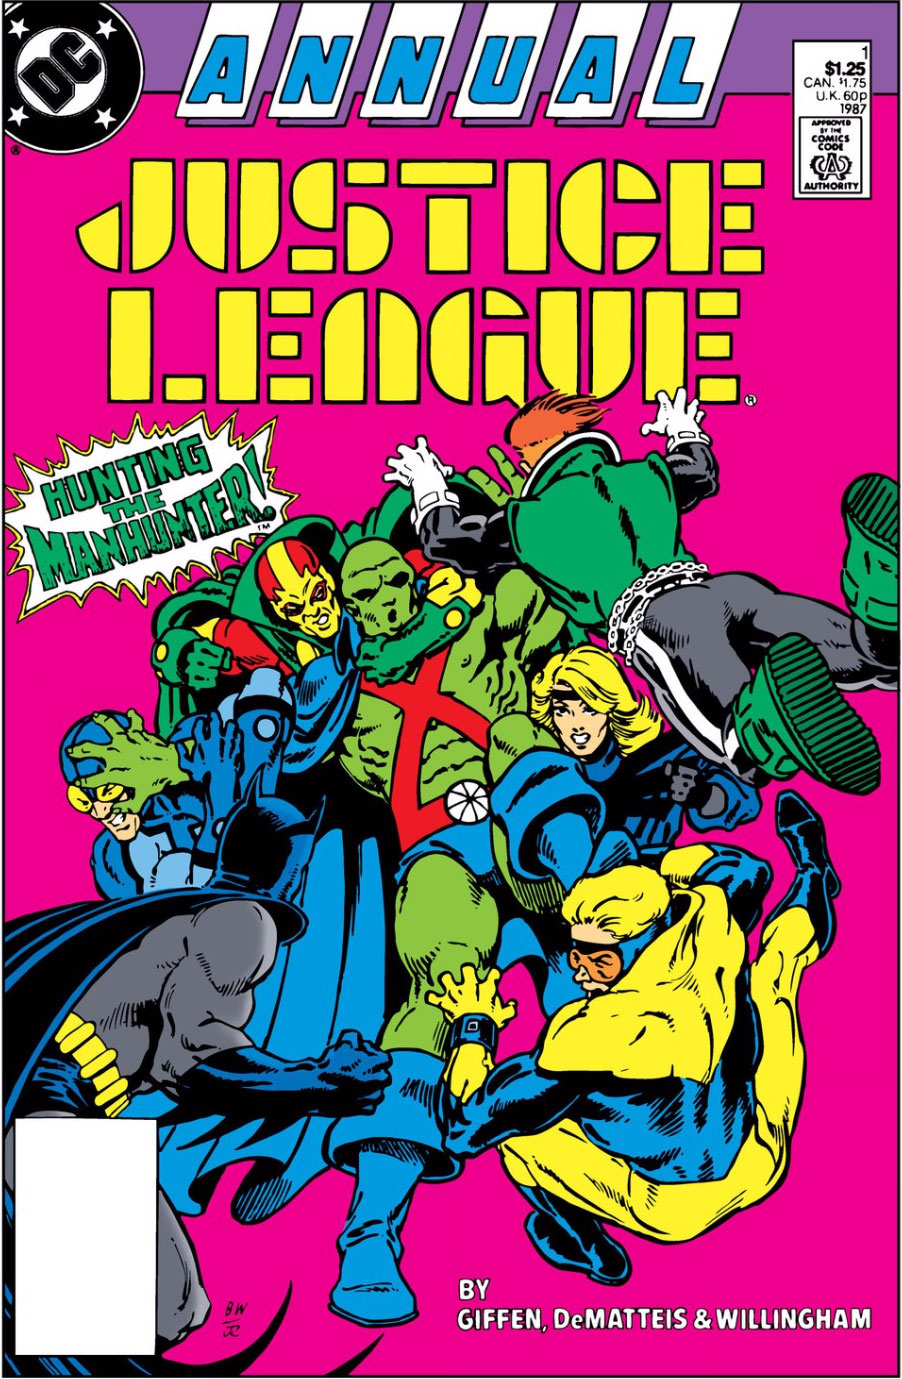 Justice League Annual #1 cover by Bill Willingham and Joe Rubinstein